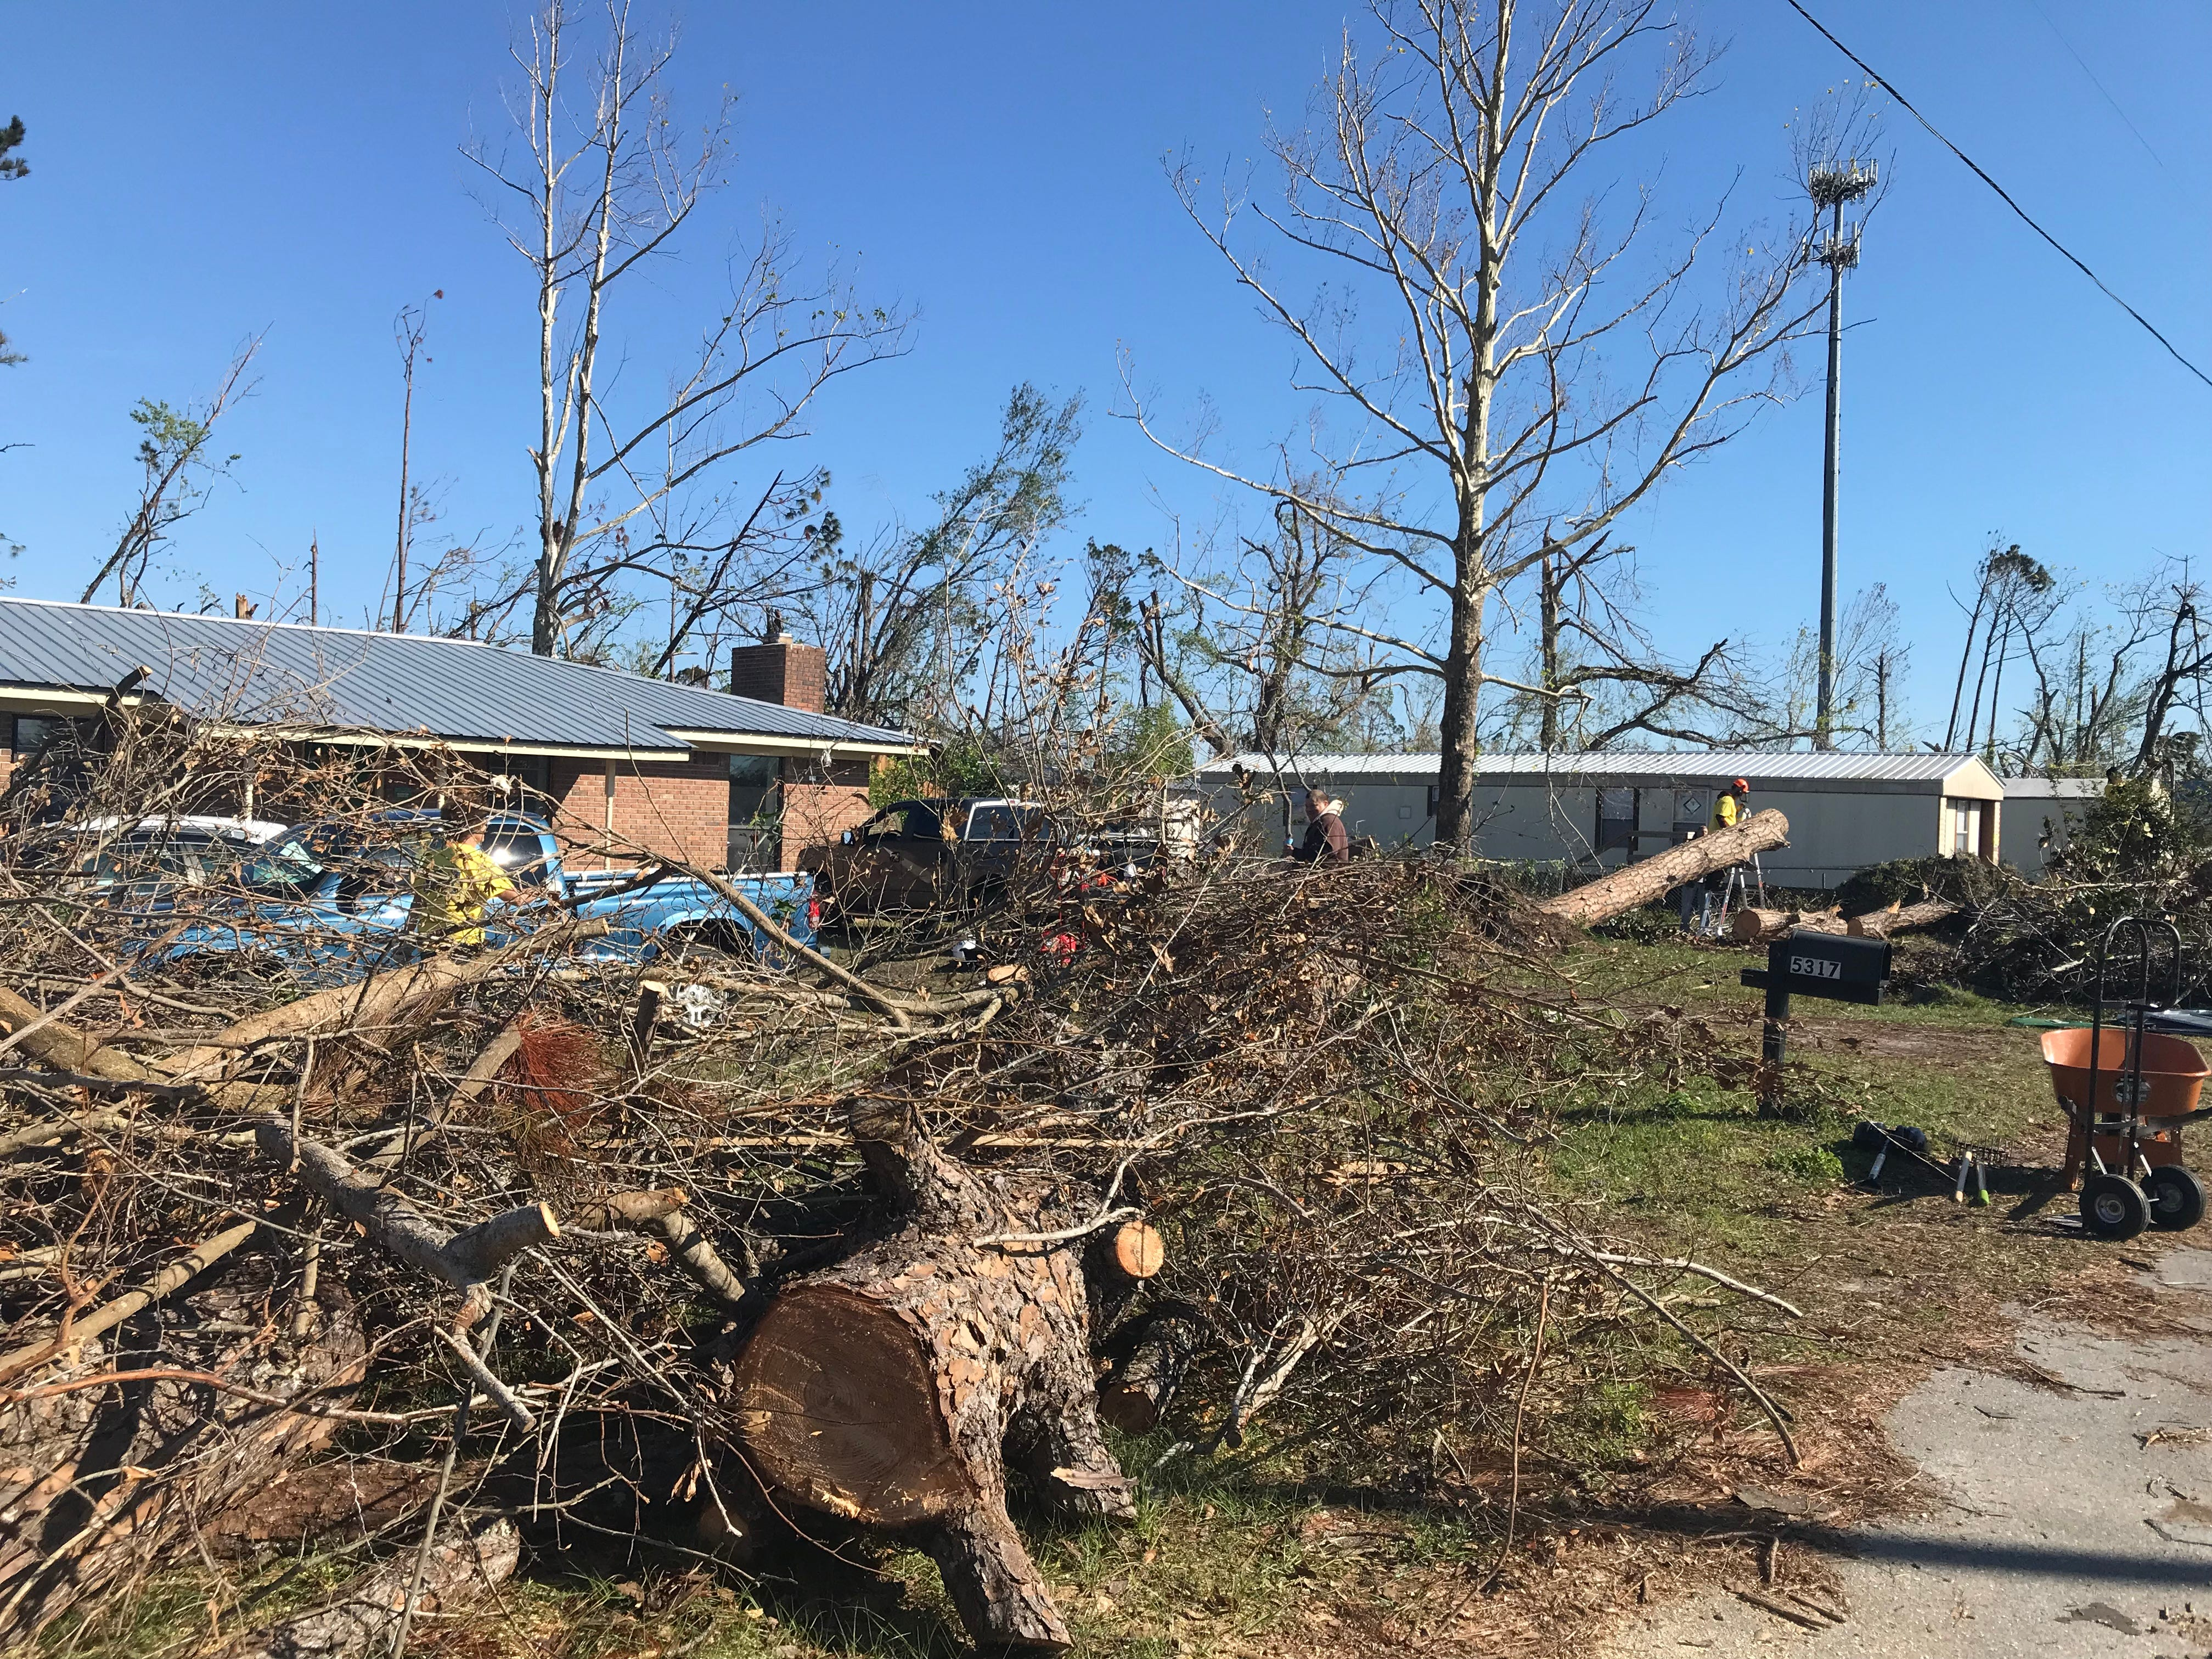 Debris and trees line the front yard of Damon Zeigel's home in Callaway, Florida.